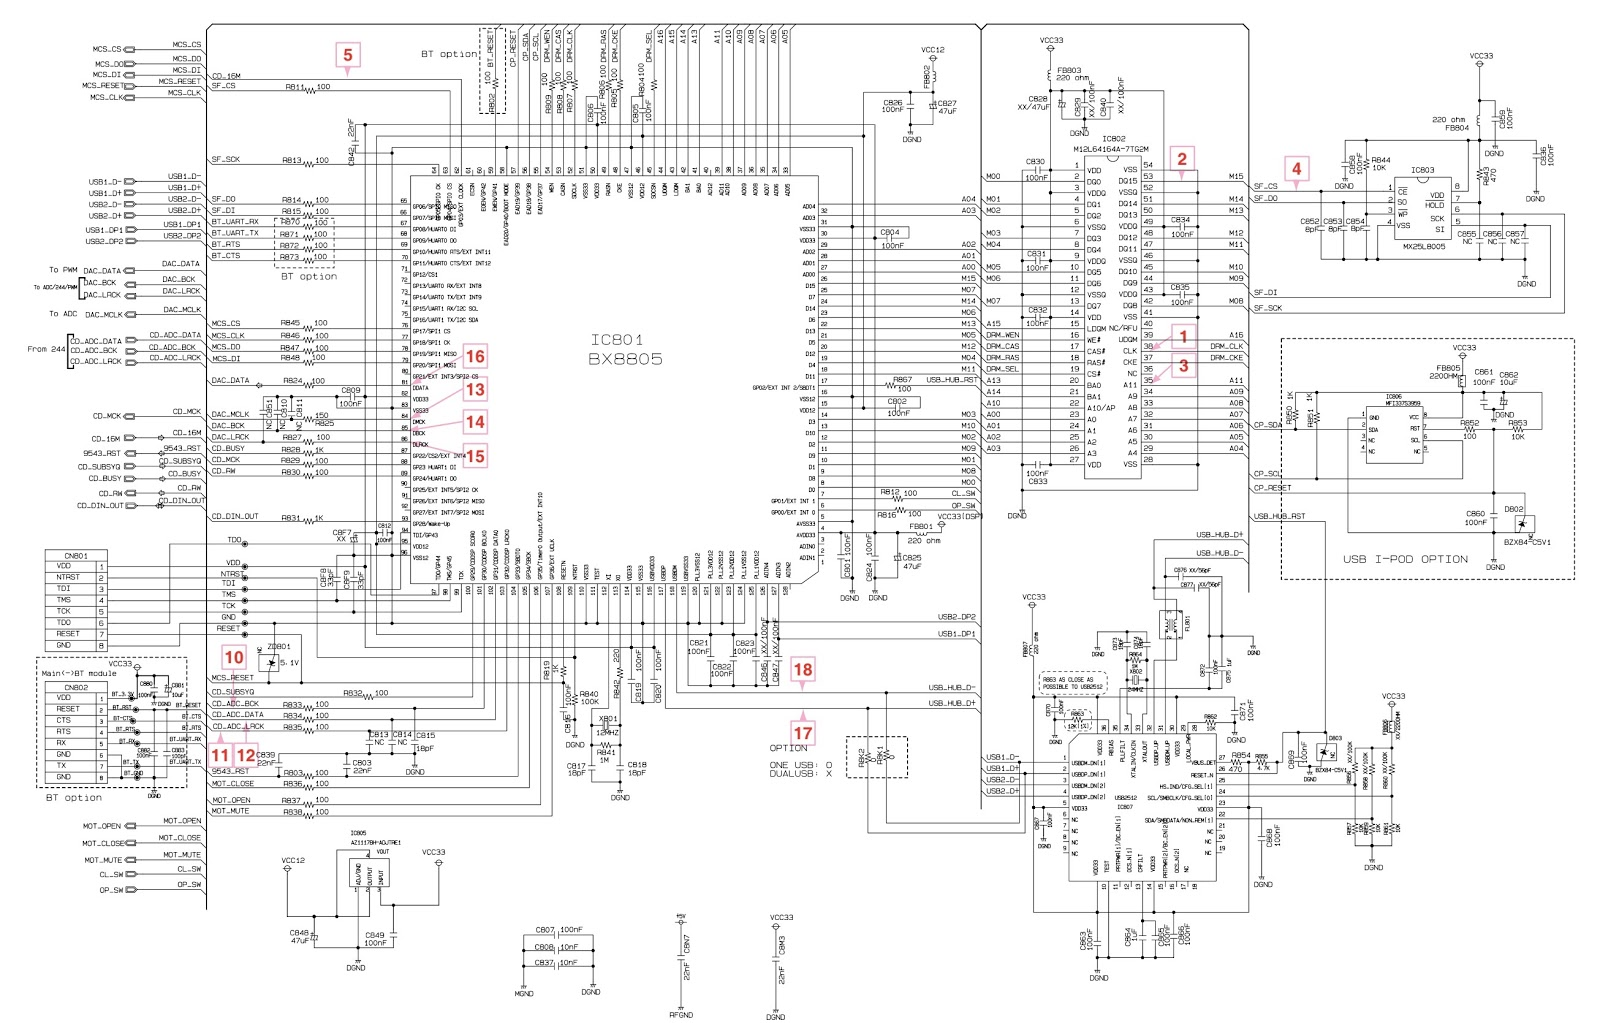 Lg Cm4530 Smps Dsp And Power Amplifier Schematic Mosfet Circuit Diagrams Ice2gs03 Switching Control Spa04n80c3